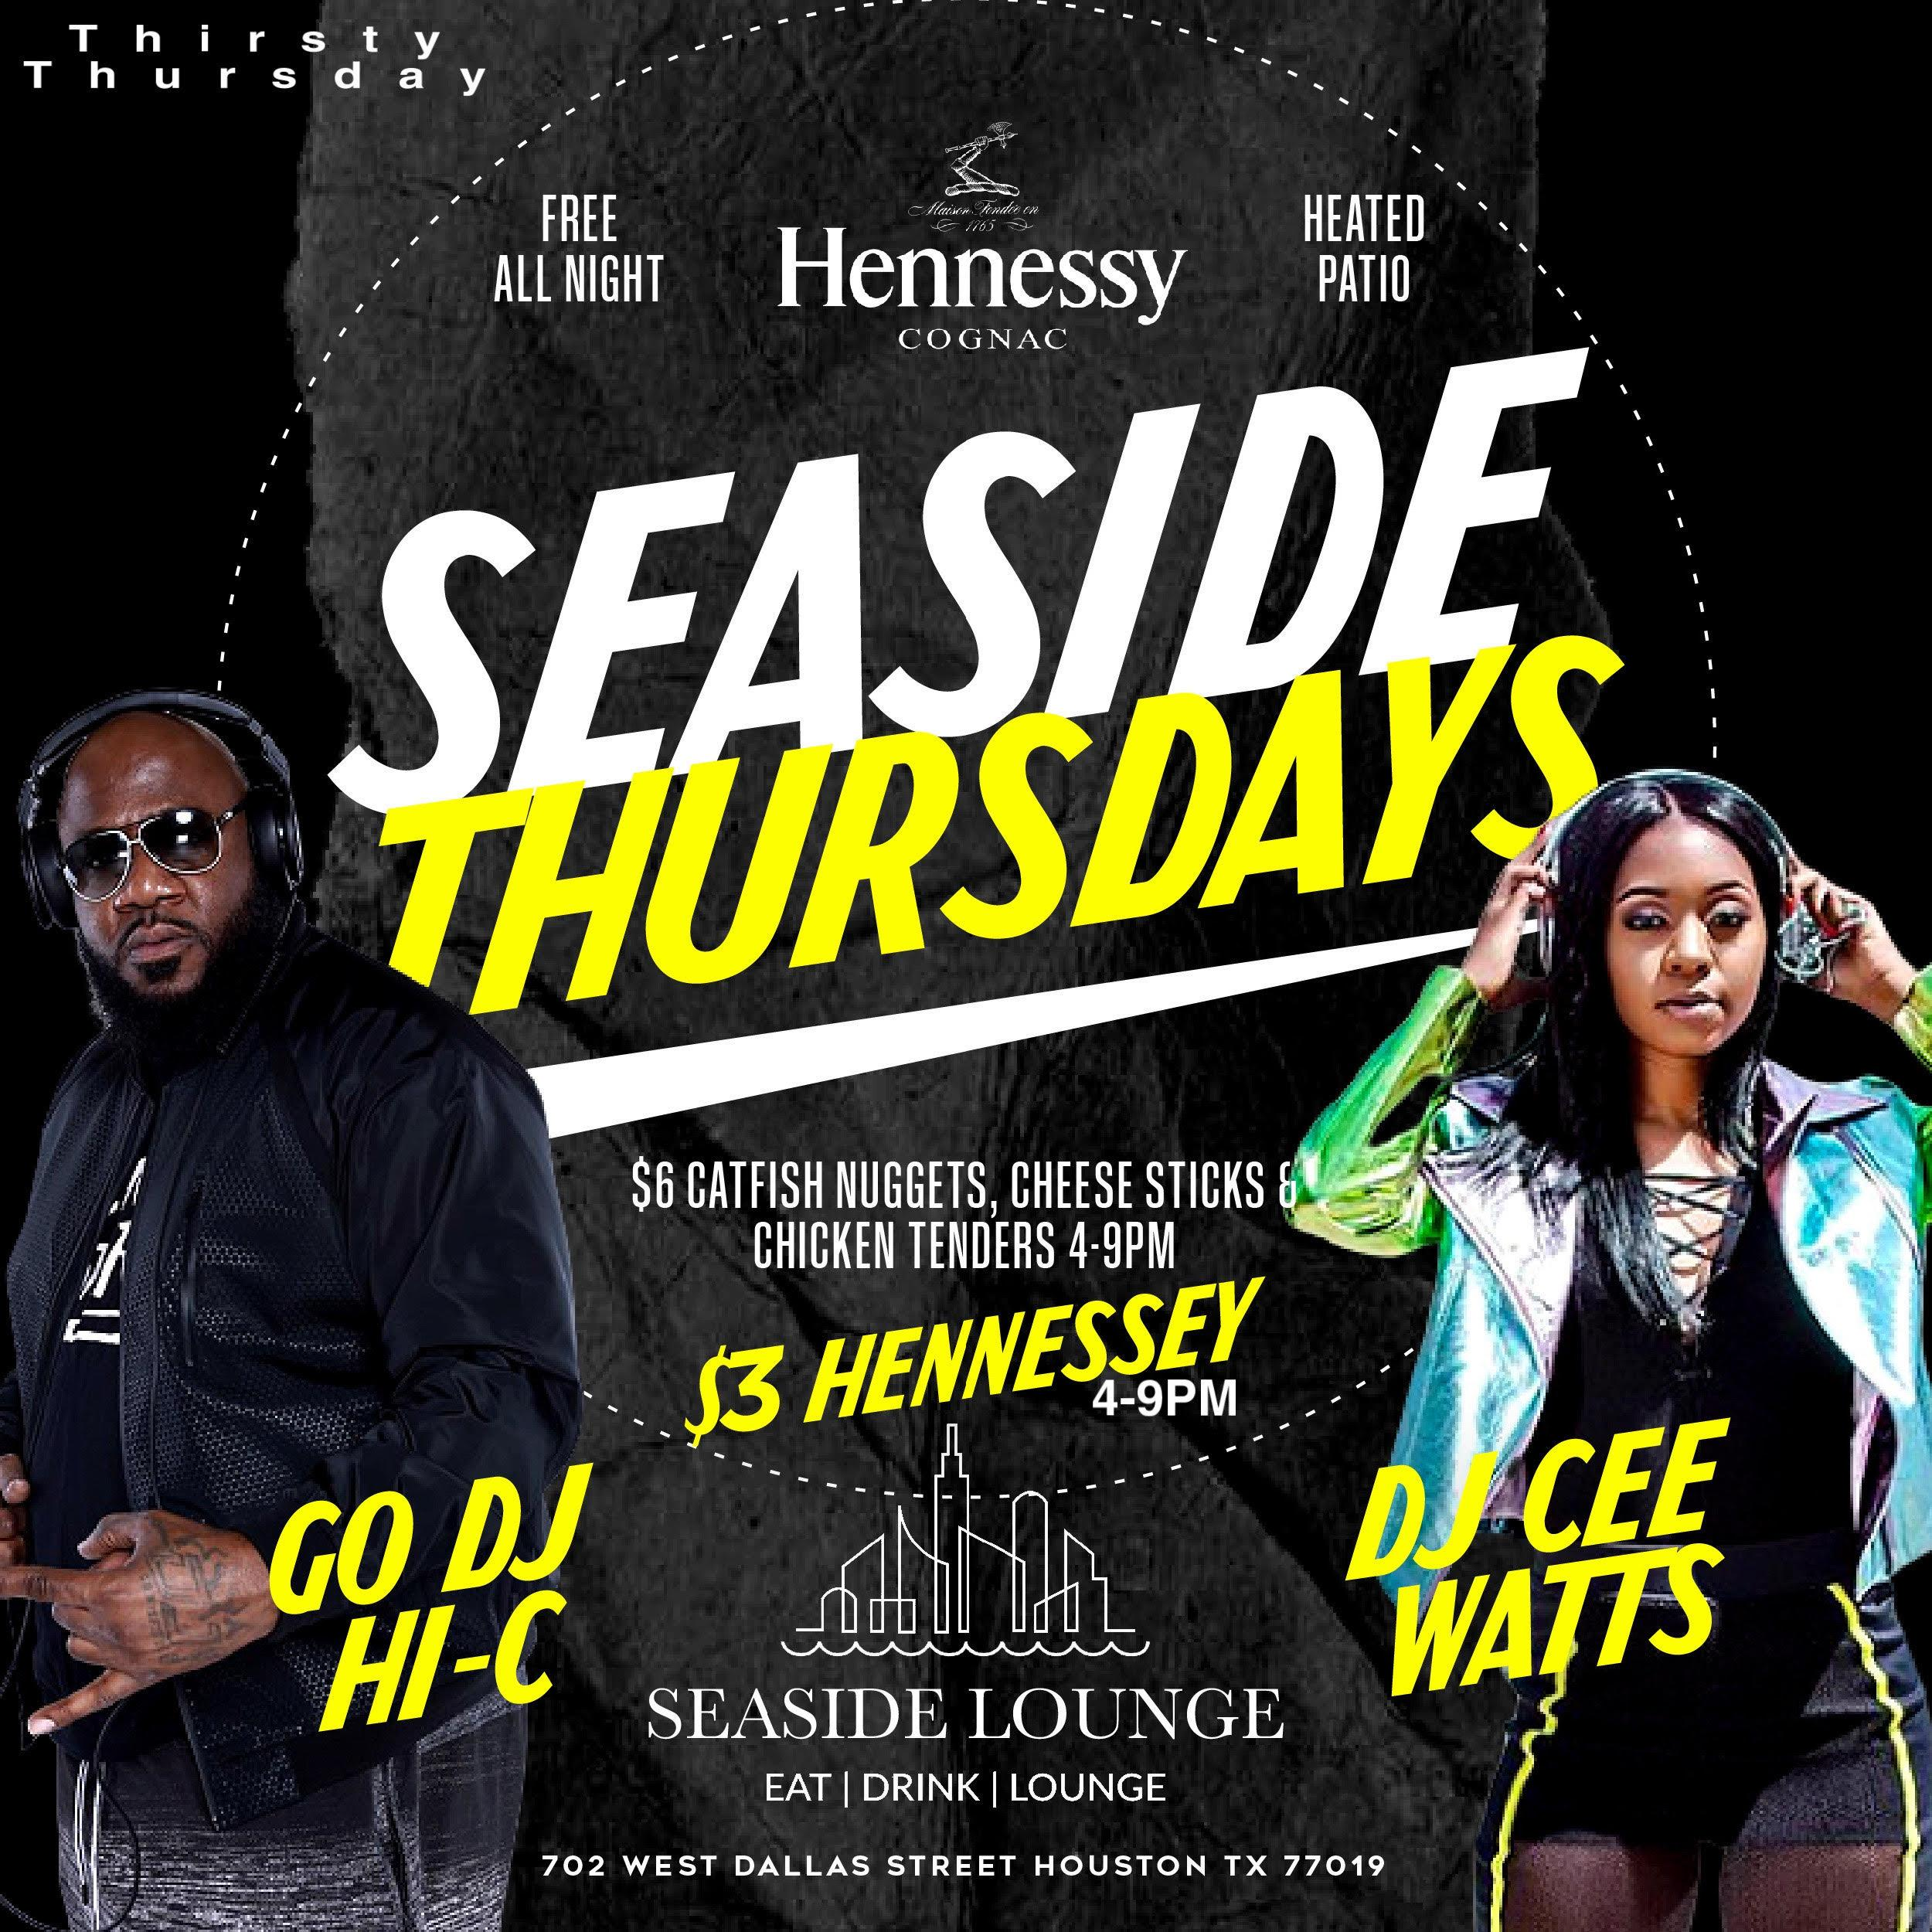 Seaside Thirsty Thursdays: $3 Henny 4-9pm + Late Night Party! Free All Night! Table Reservations Call 713.259.5725